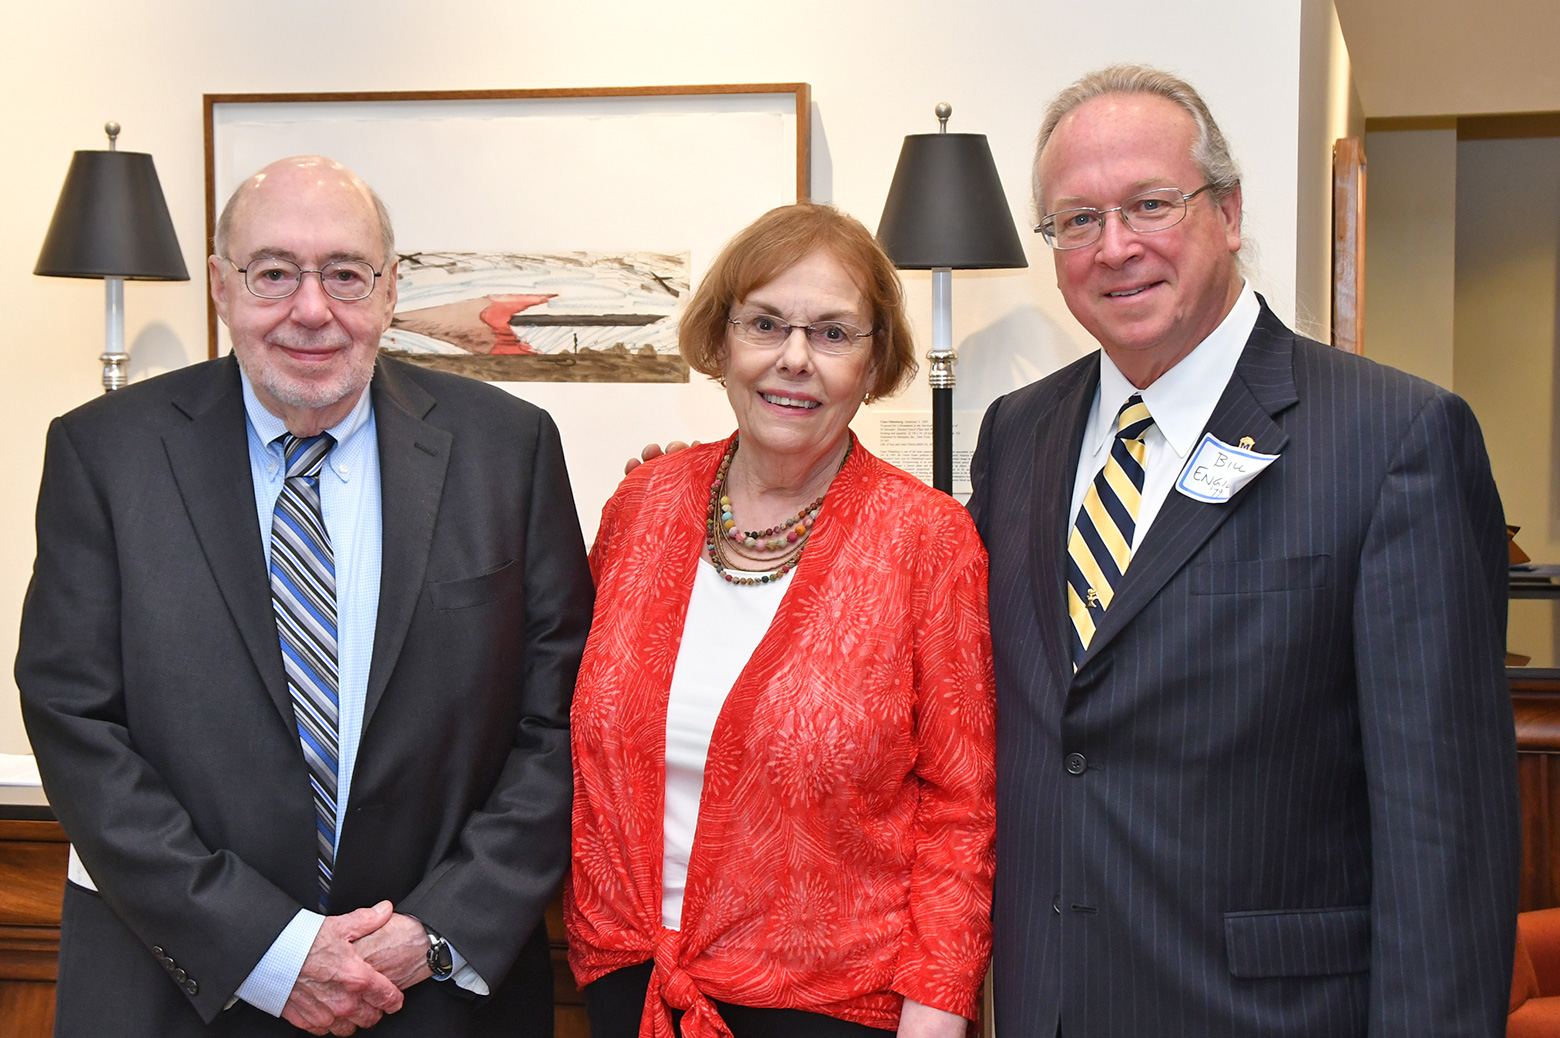 Image of Scott and Jan Fogler, and Bill Engibous